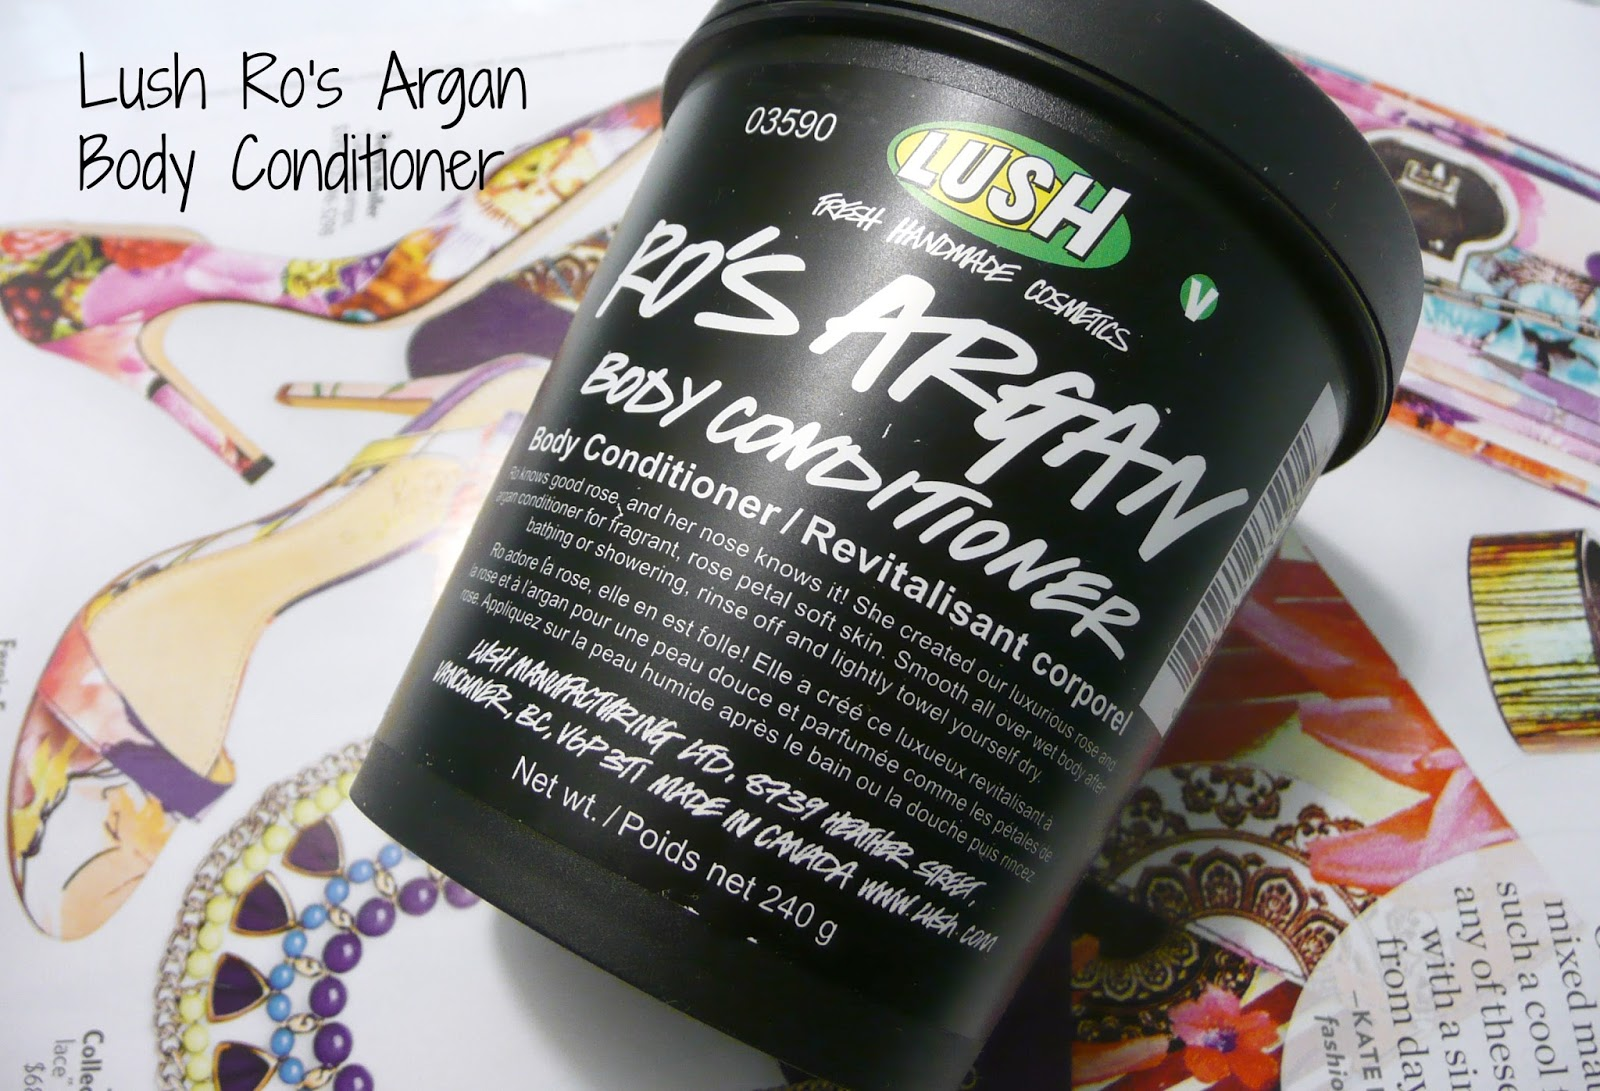 Lush Ro's Argan Body Conditioner Review